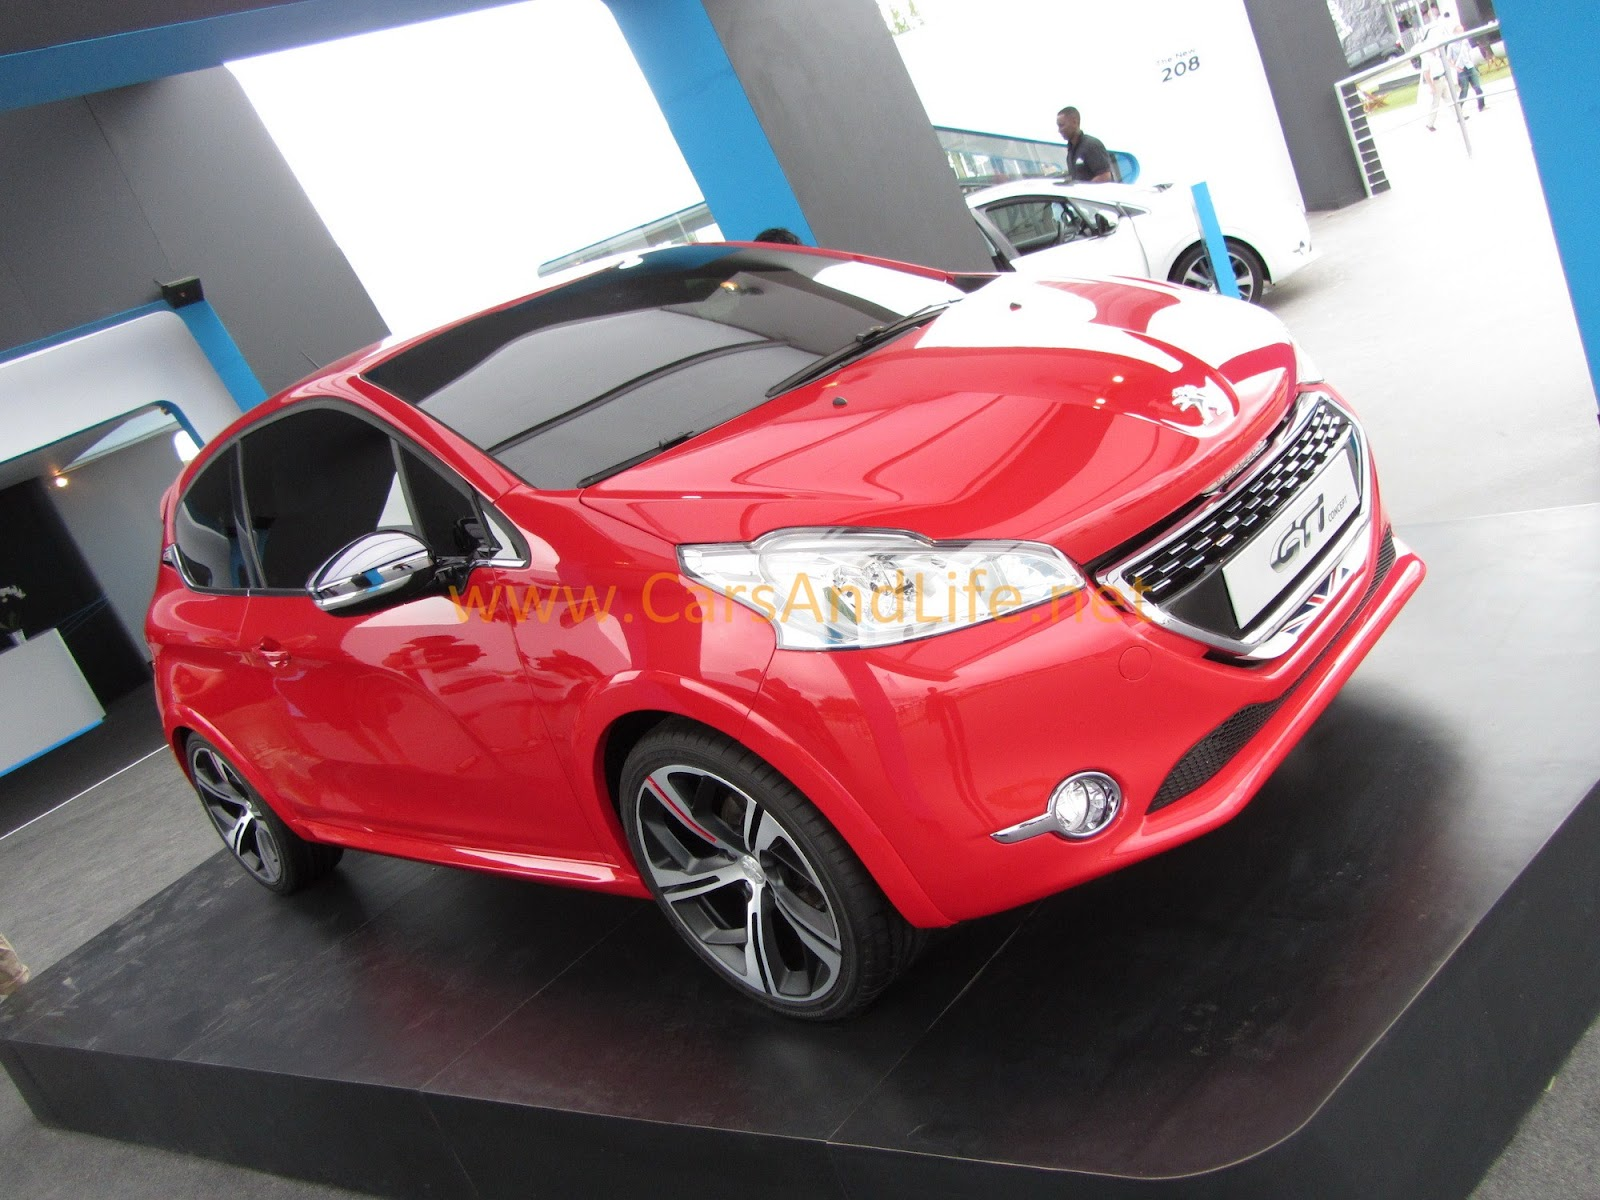 detailed look 1bc6a 4924a New Peugeot 208 GTi - Cars  Life  Cars Fashion Lifestyle Blo